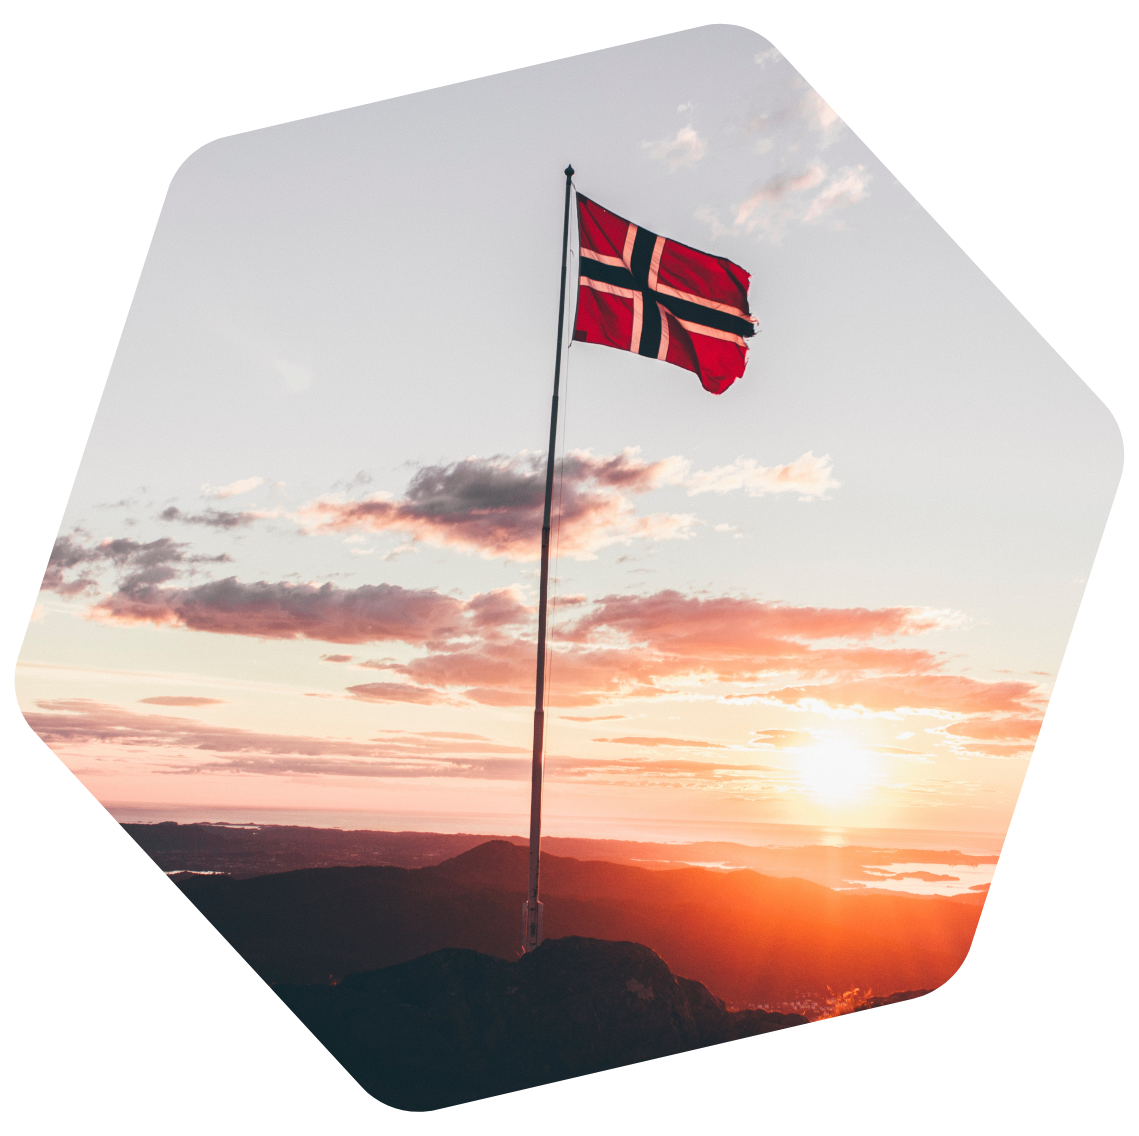 Norway flag on the sunset